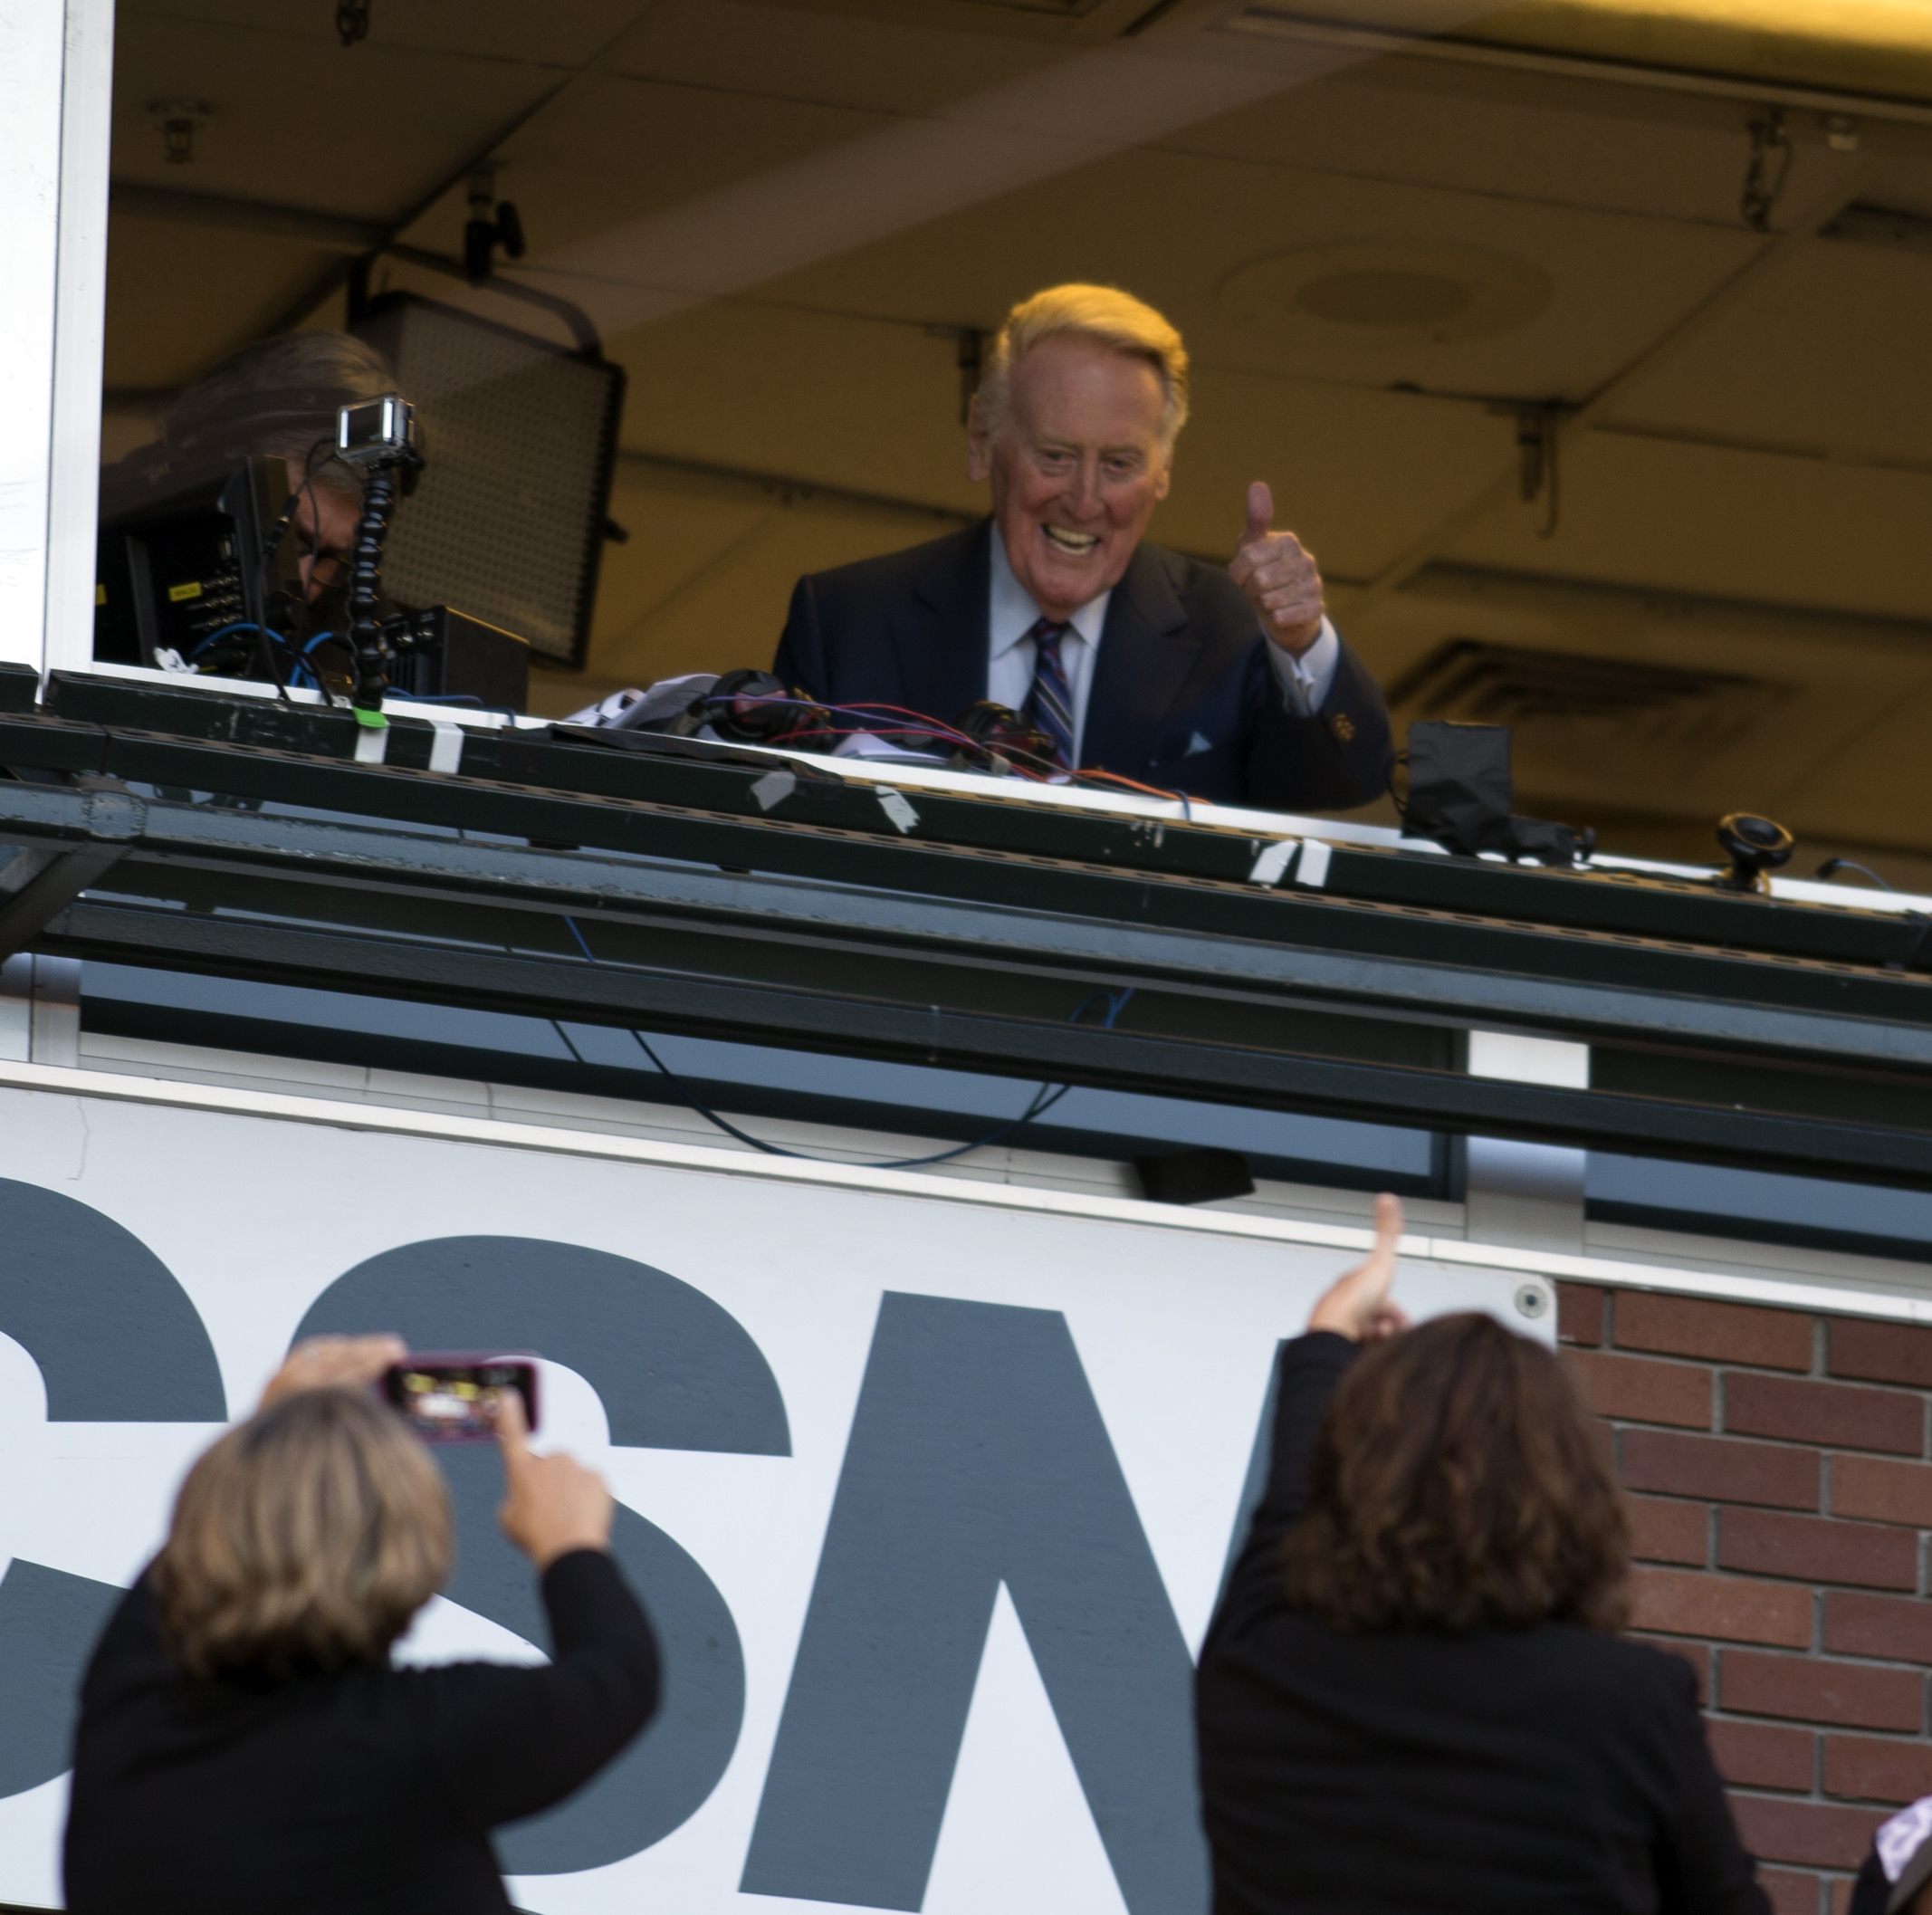 Los Angeles Dodgers broadcaster Vin Scully gestures to fans before the Dodgers' baseball game against the San Francisco Giants, Friday, Sept. 30, 2016, in San Francisco. Scully will retire at the end of the season after 67 years in the Dodgers' broadcast